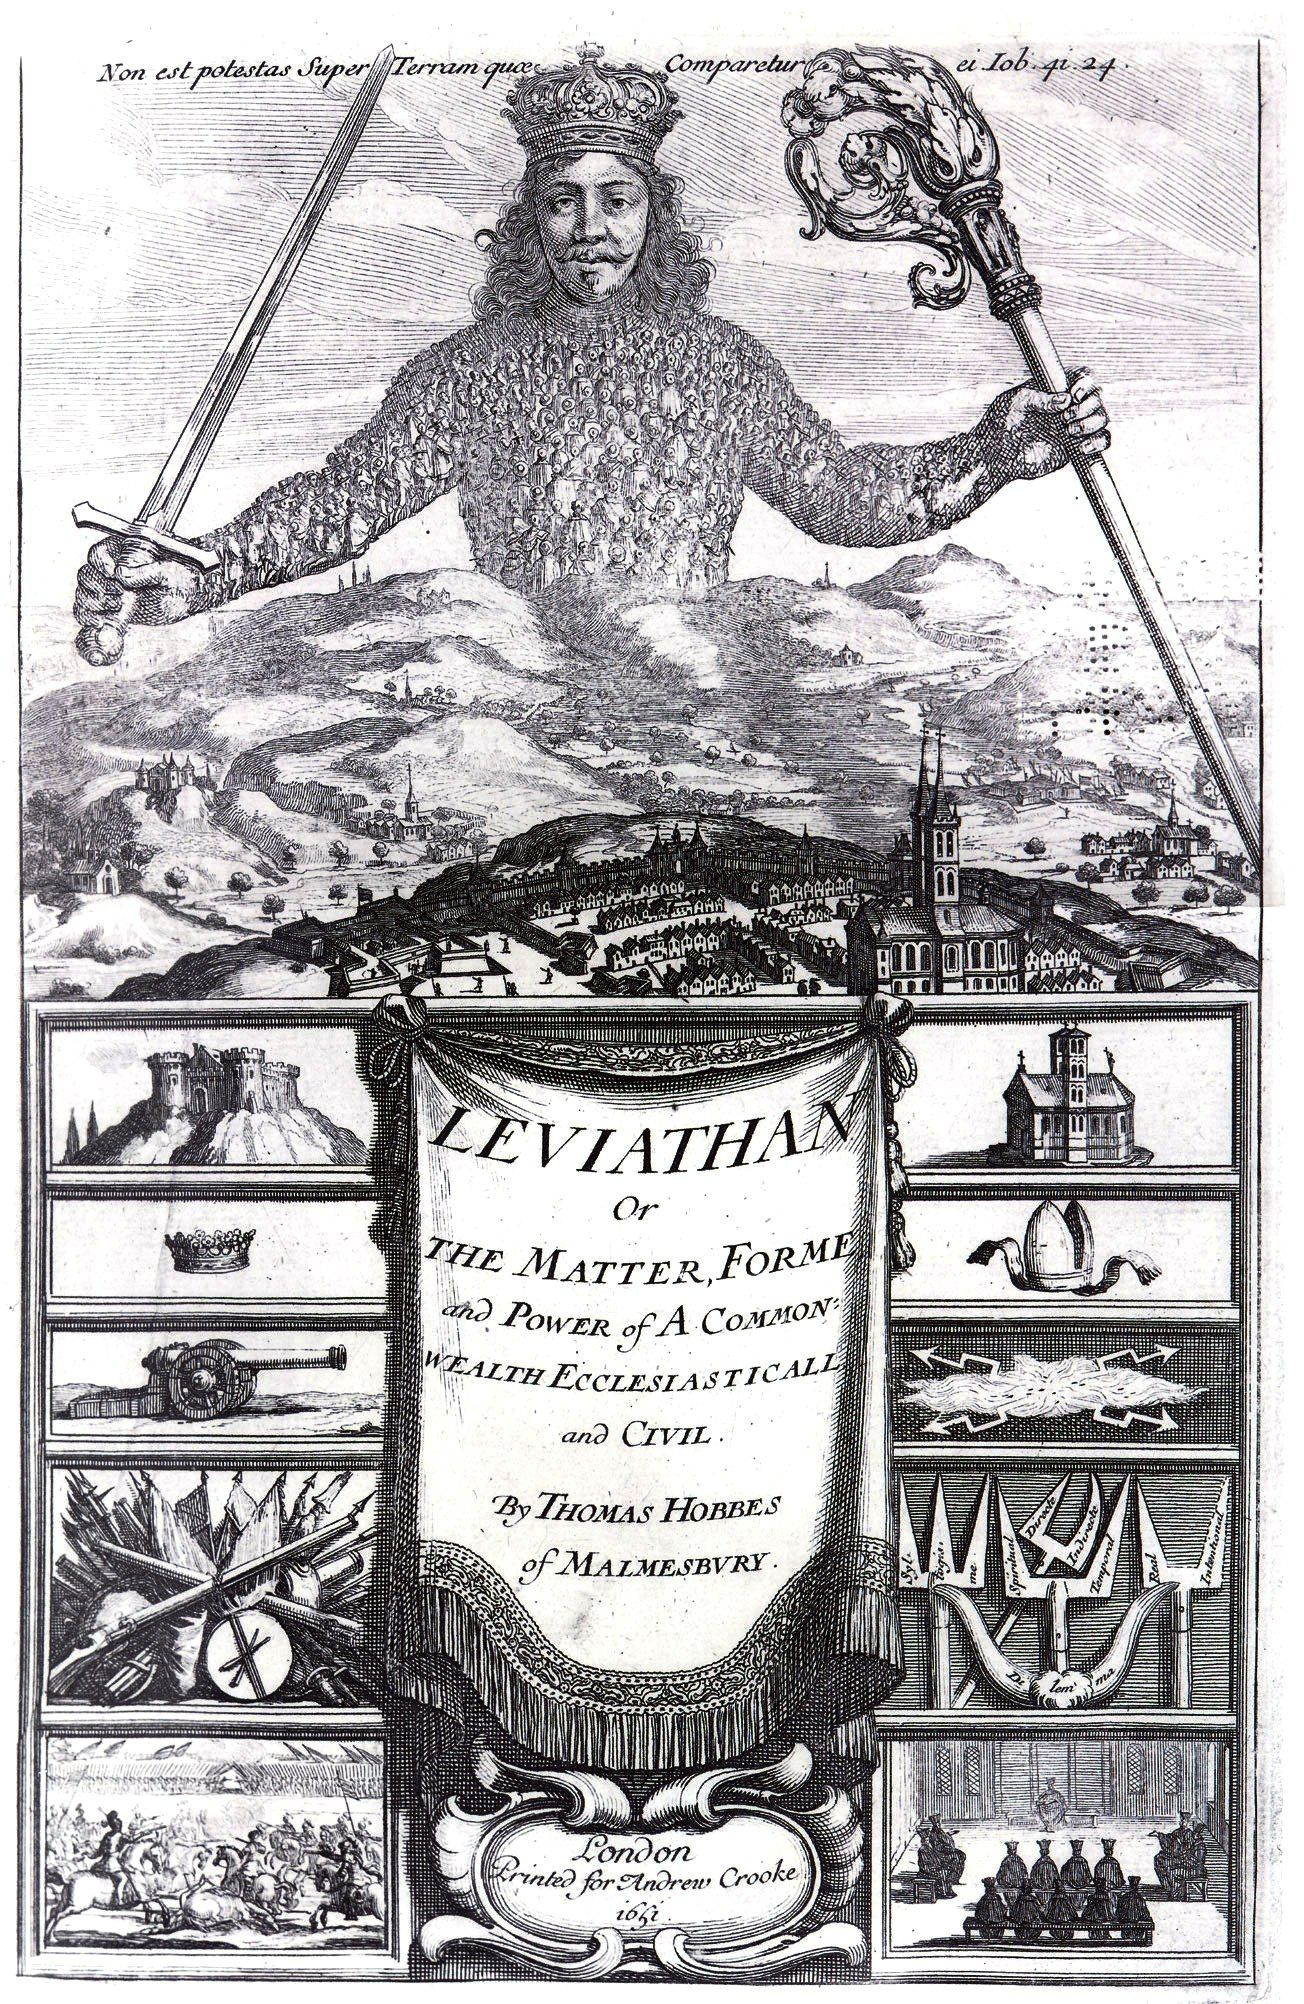 The cover of Leviathan by Thomas Hobbes, a pioneering writer in the philosophies of Absolutism and the Divine Right of Rulers